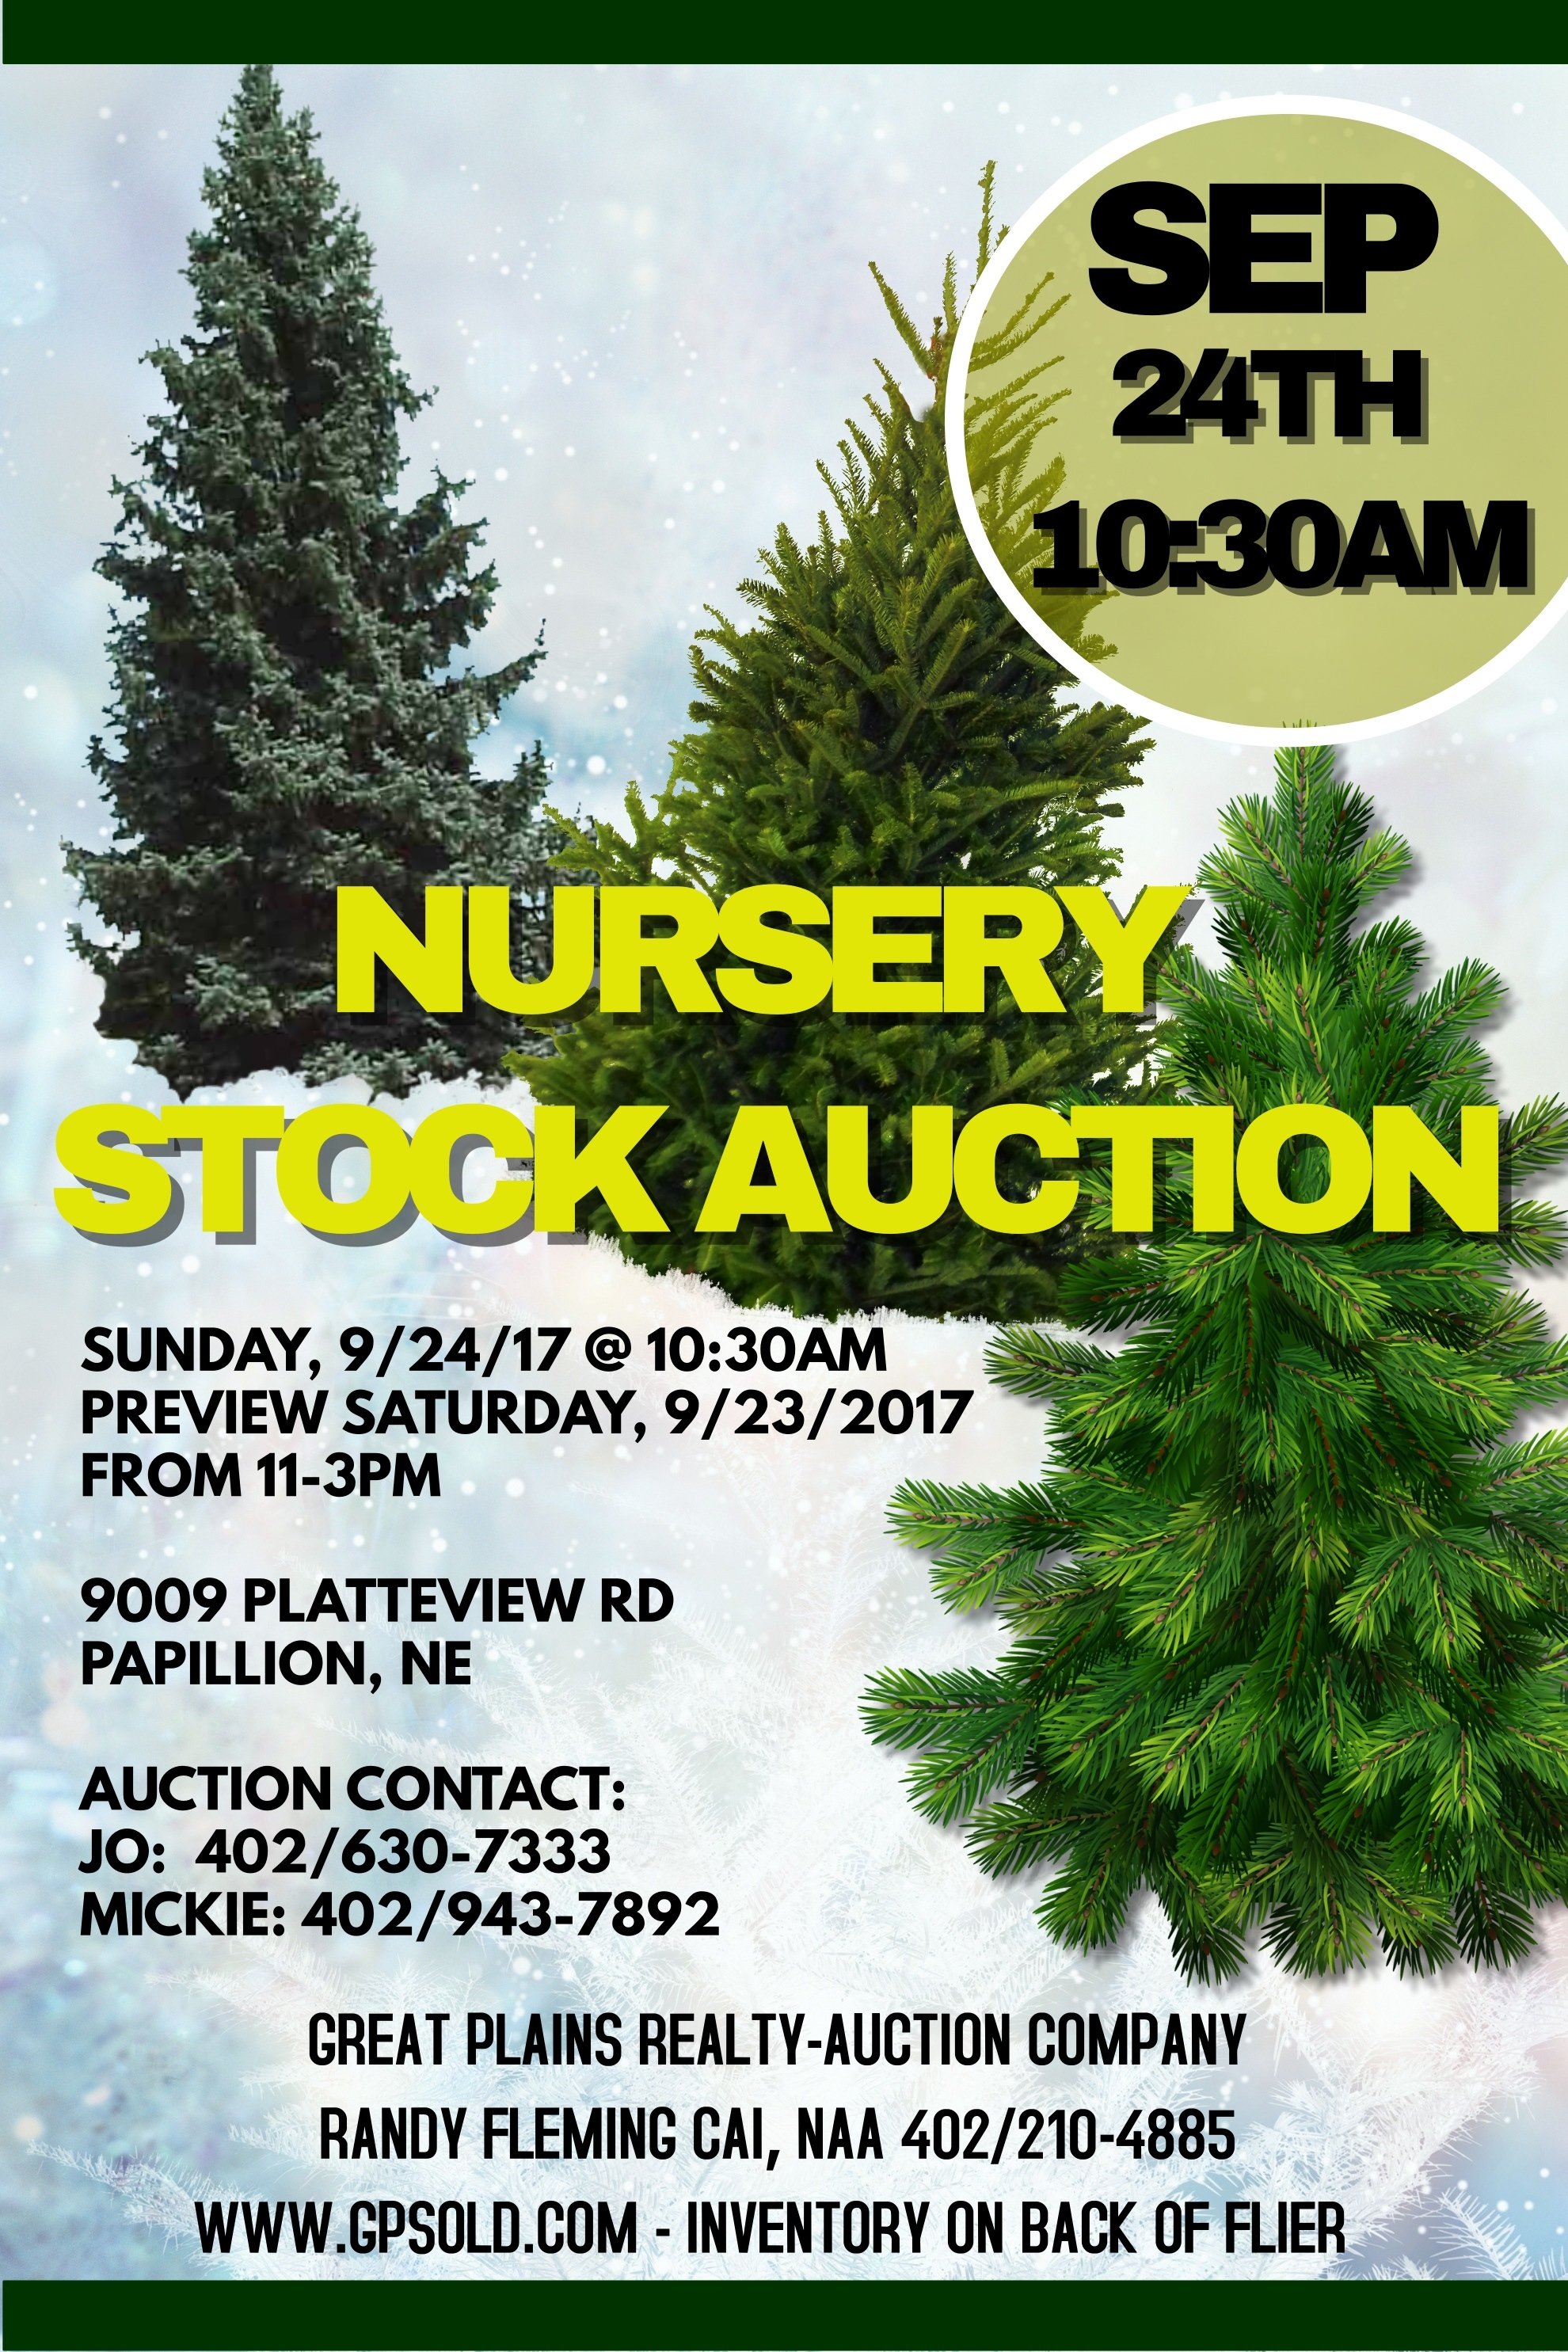 Complete auction listing is posted under the pdf icon